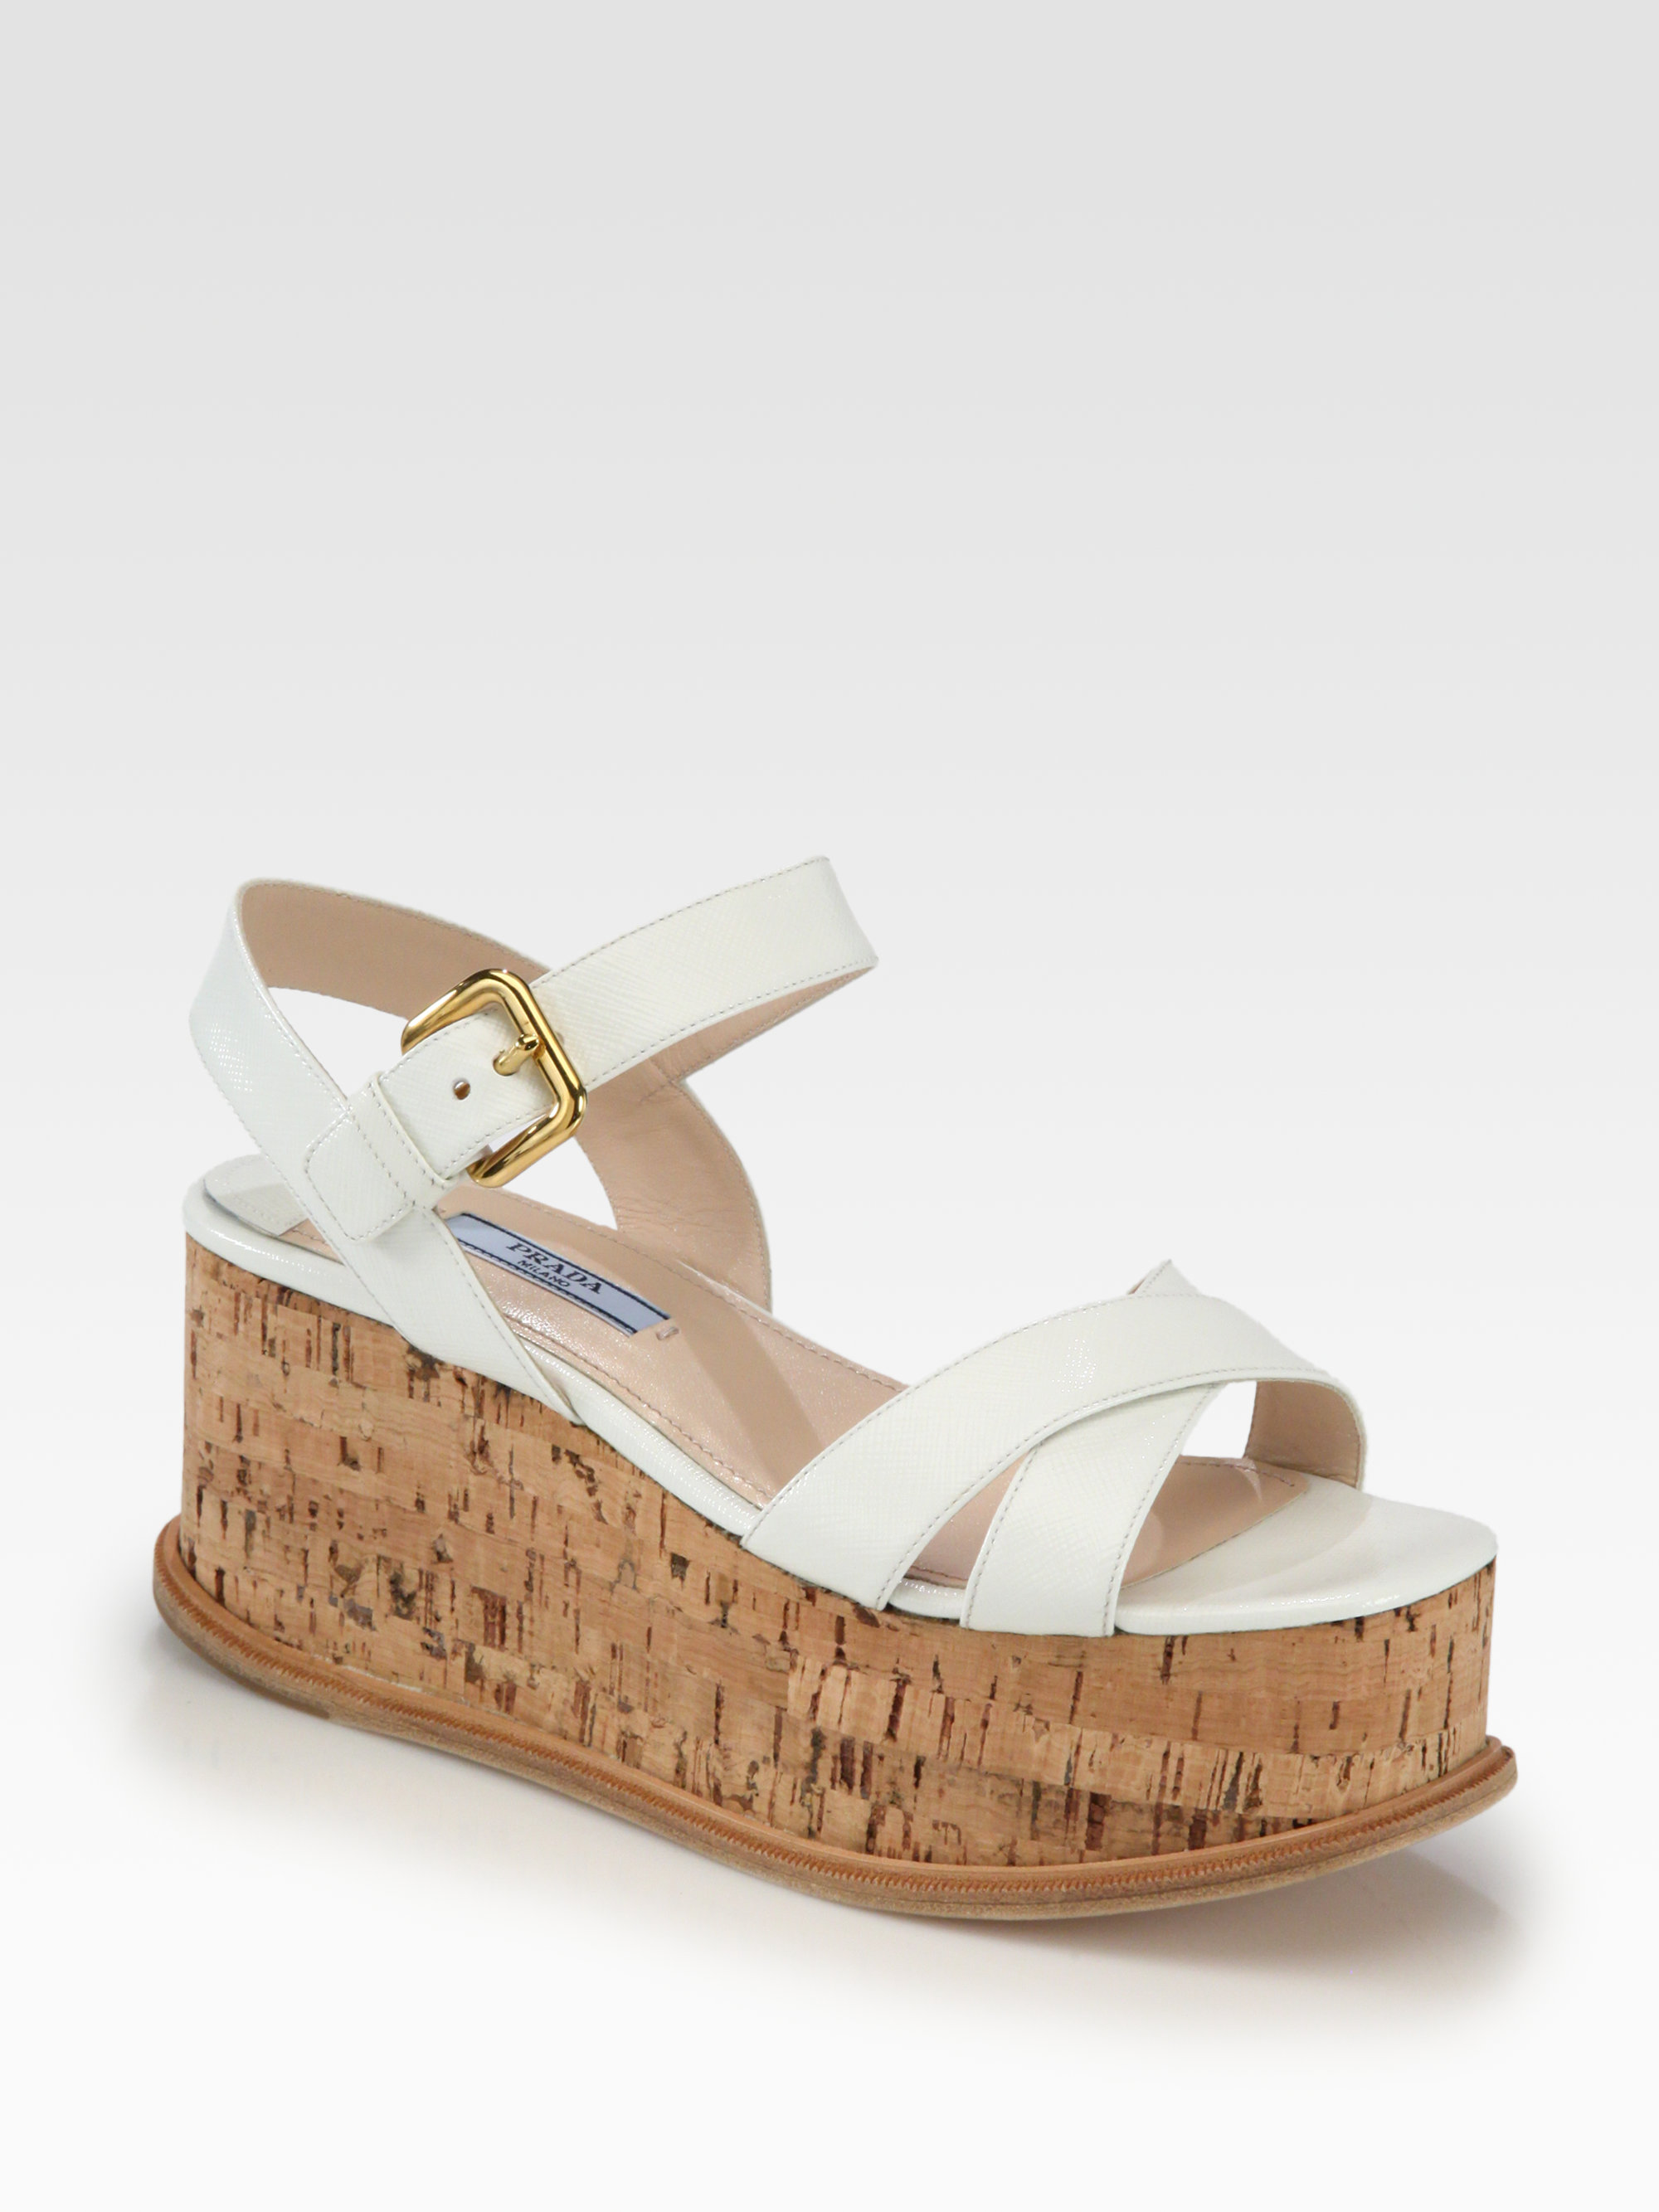 91e6edffeeb Lyst - Prada Saffiano Patent Leather Cork Wedge Sandals in White